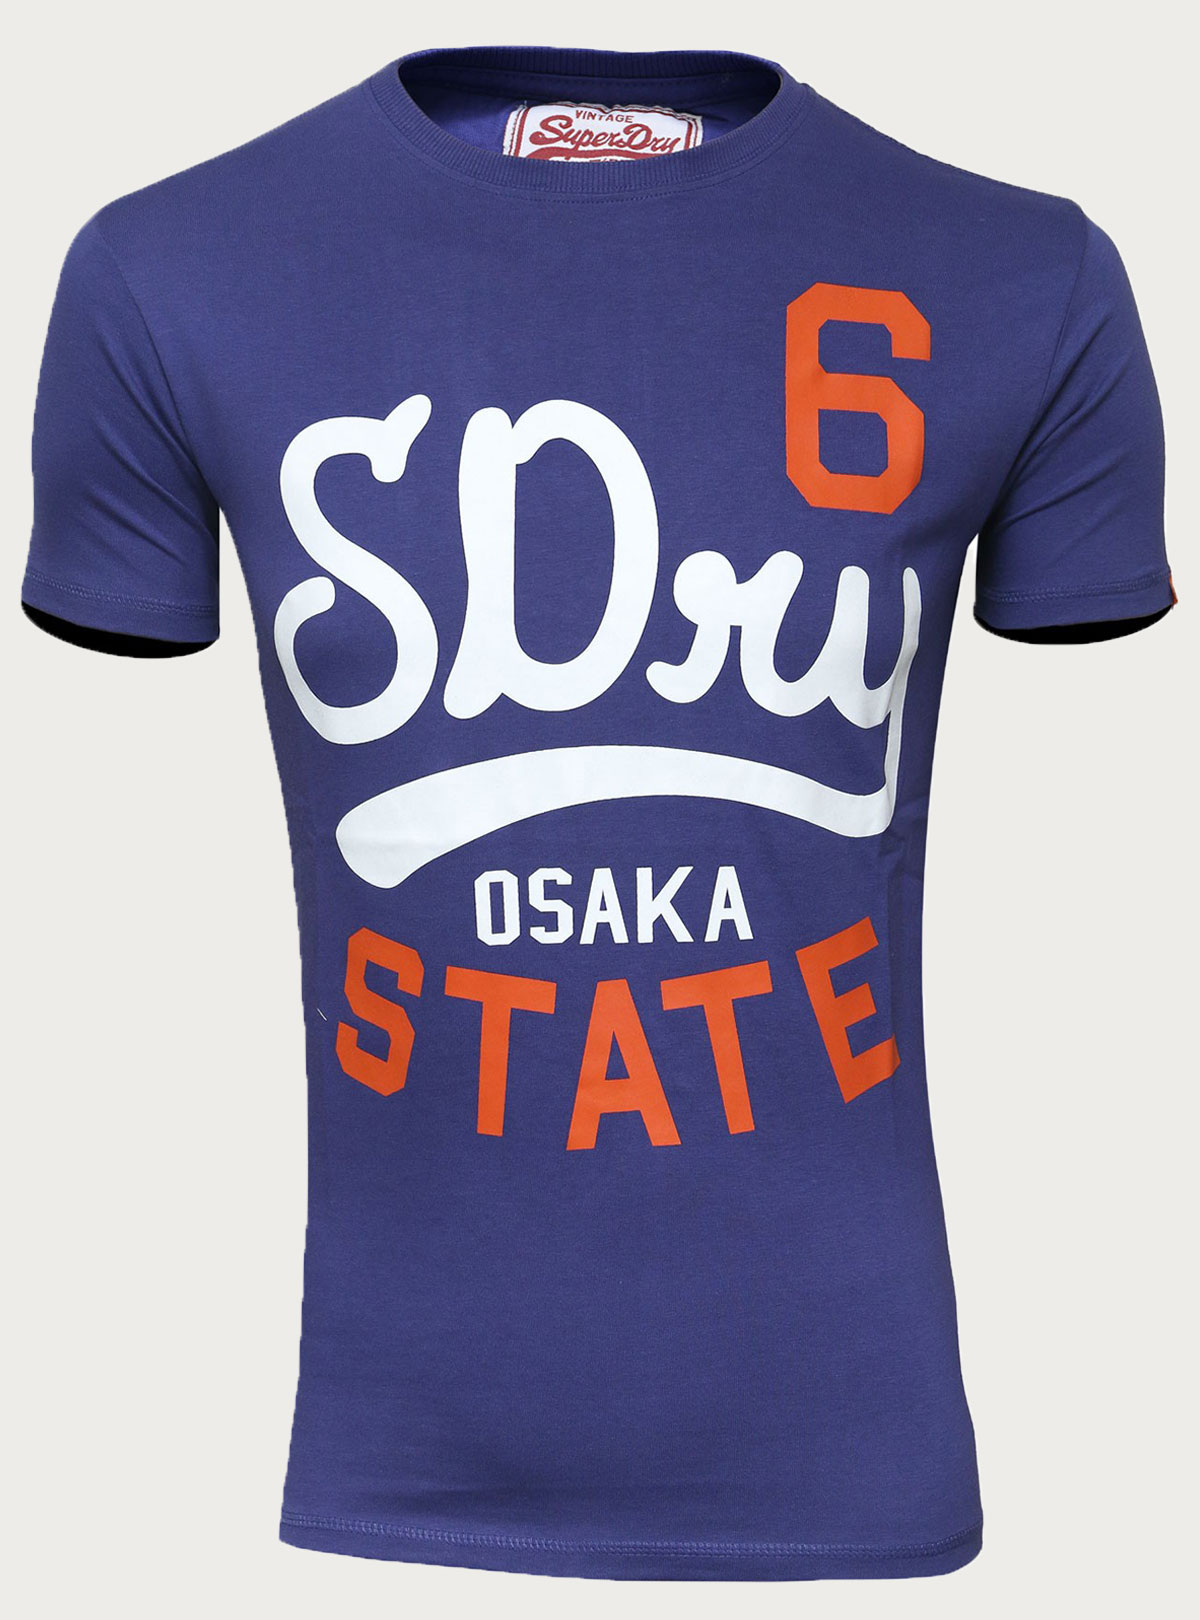 Round T-Shirt By - Superdry